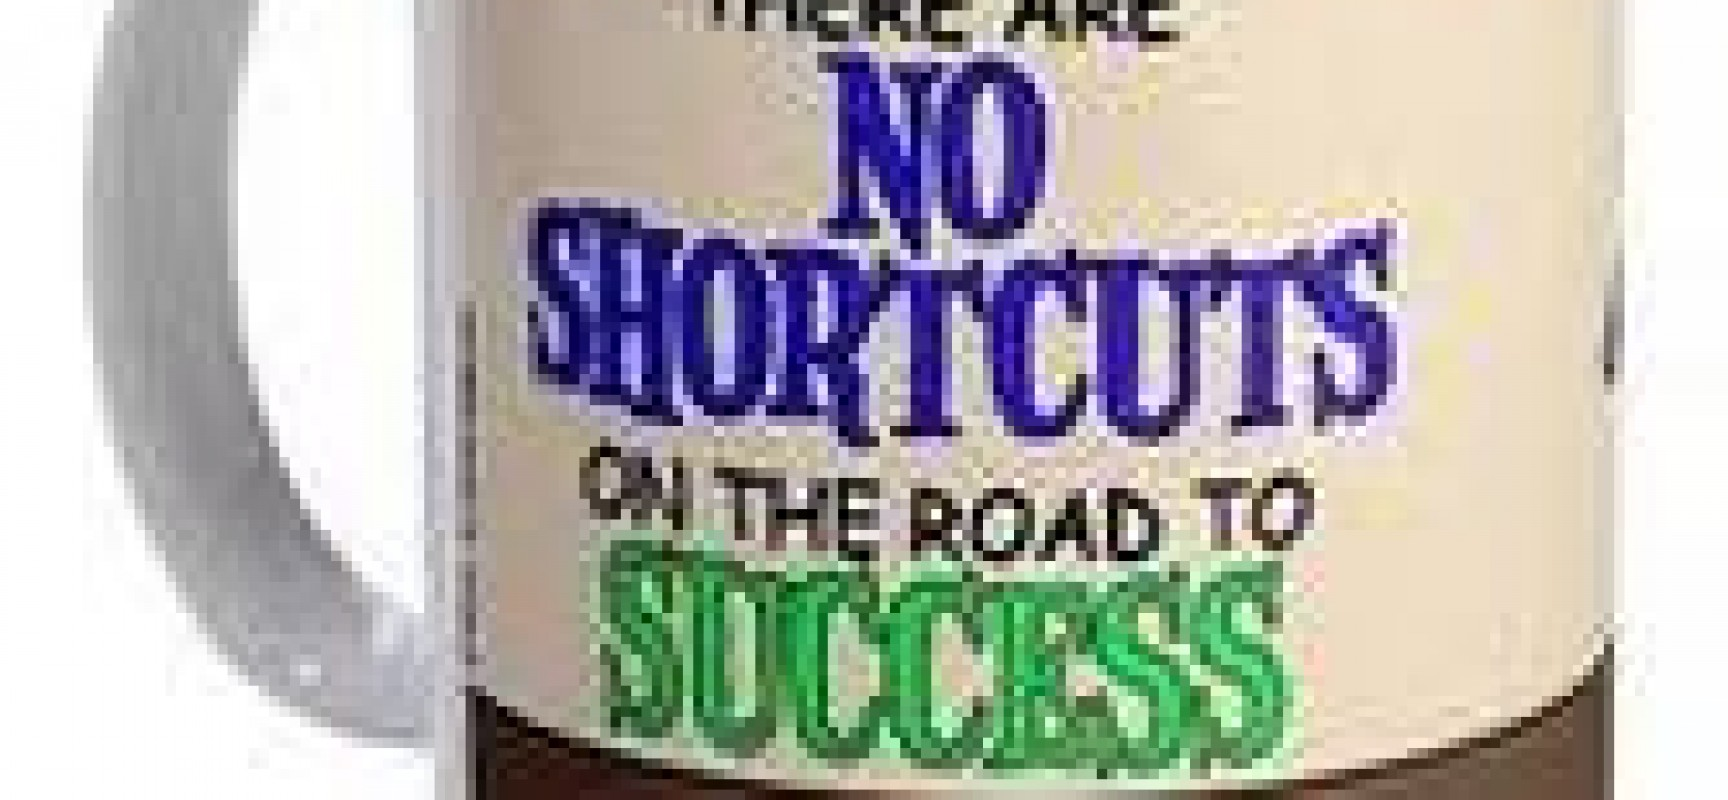 There's no shortcut key to Success.